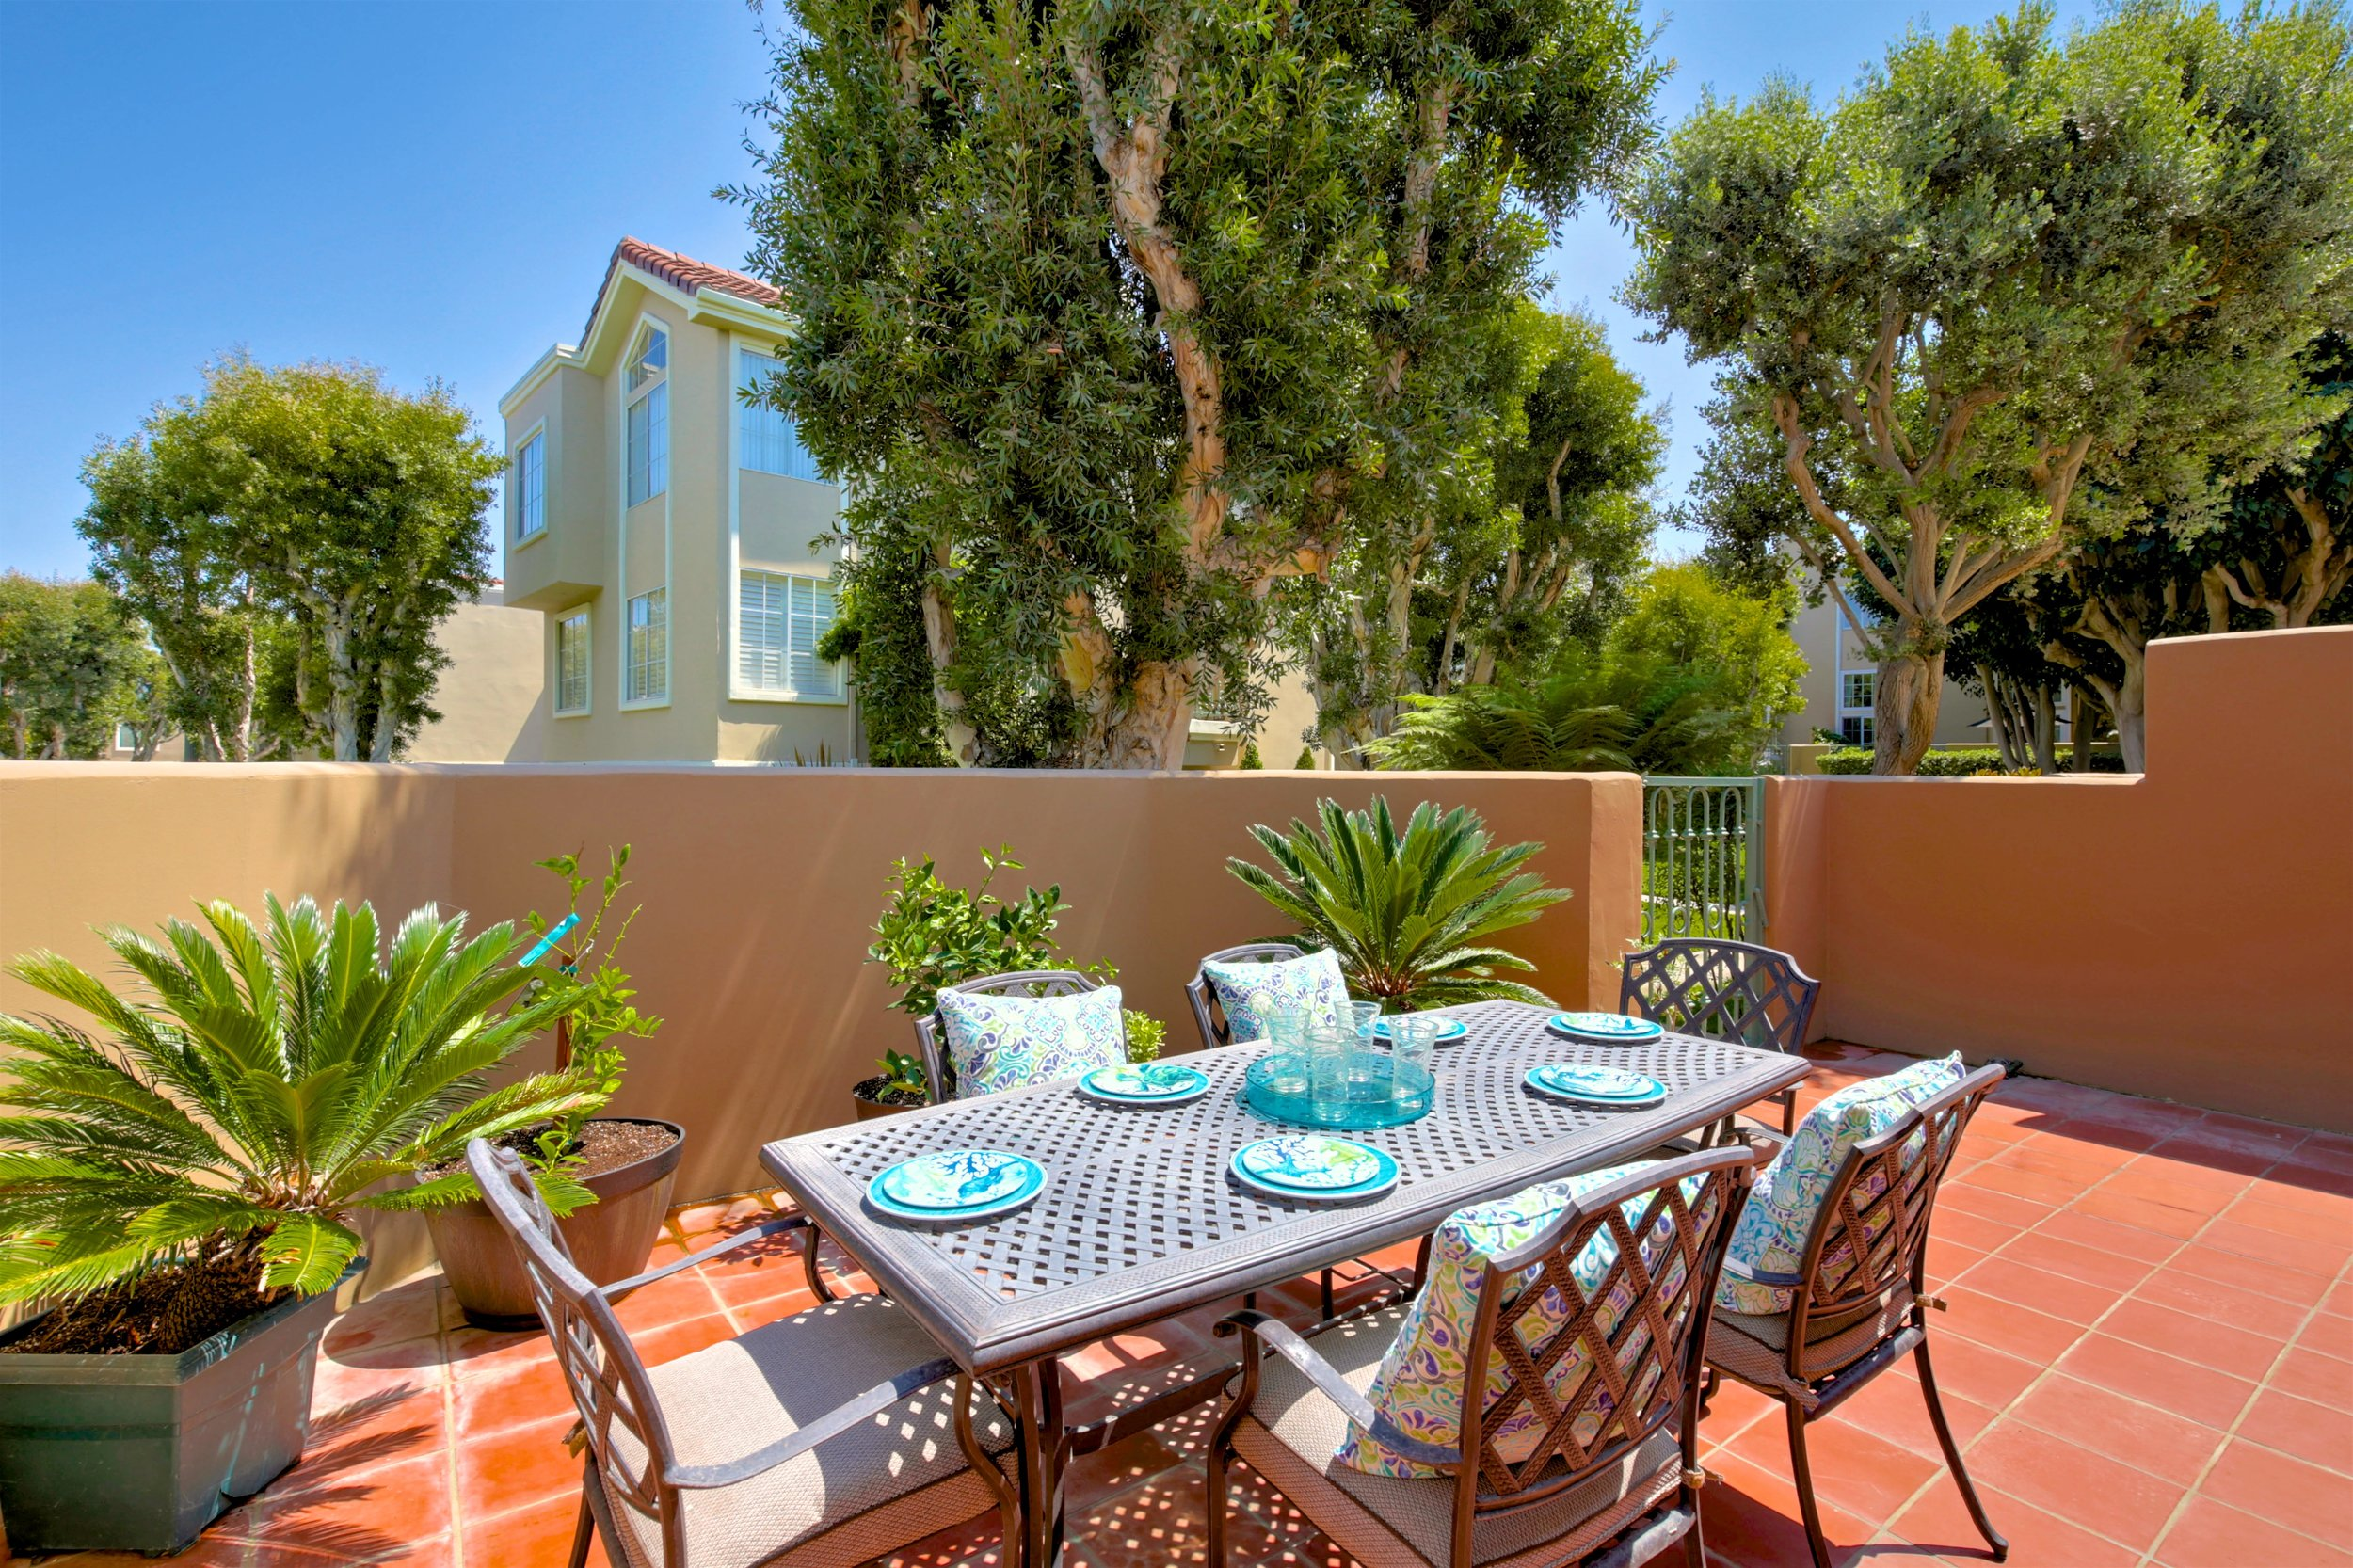 - Prestigious SeaCliff on the GreensSOLD by Maria X for $847,00019346 Peachtree Ln, Huntington Beach3 Bedrooms, 2.5 Baths, 2065 sq ft